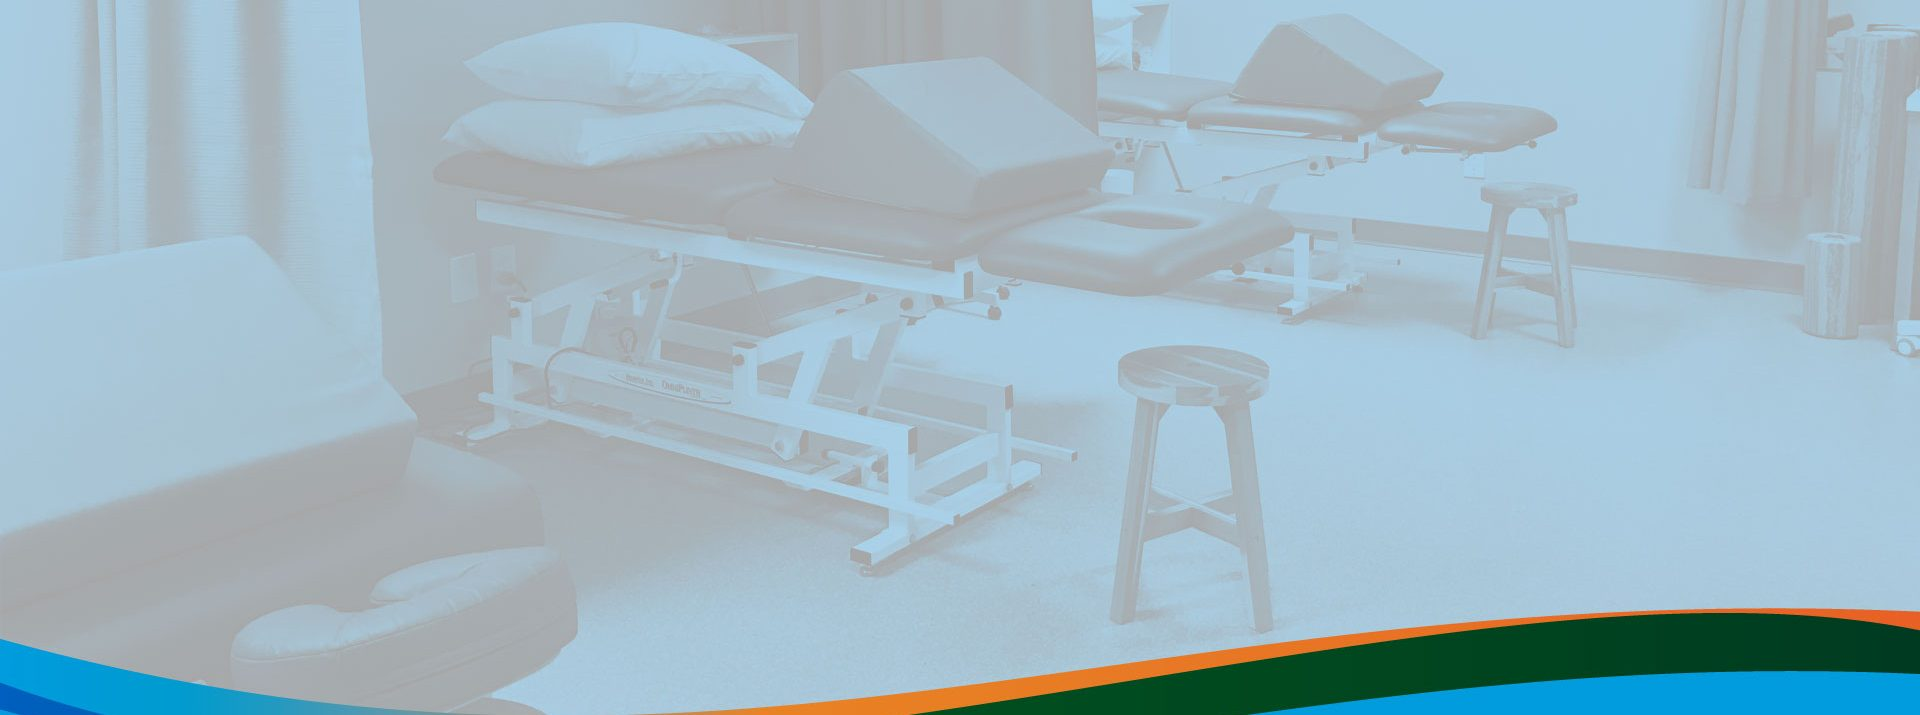 You will have access to the 6000 square foot gym while working through your injury